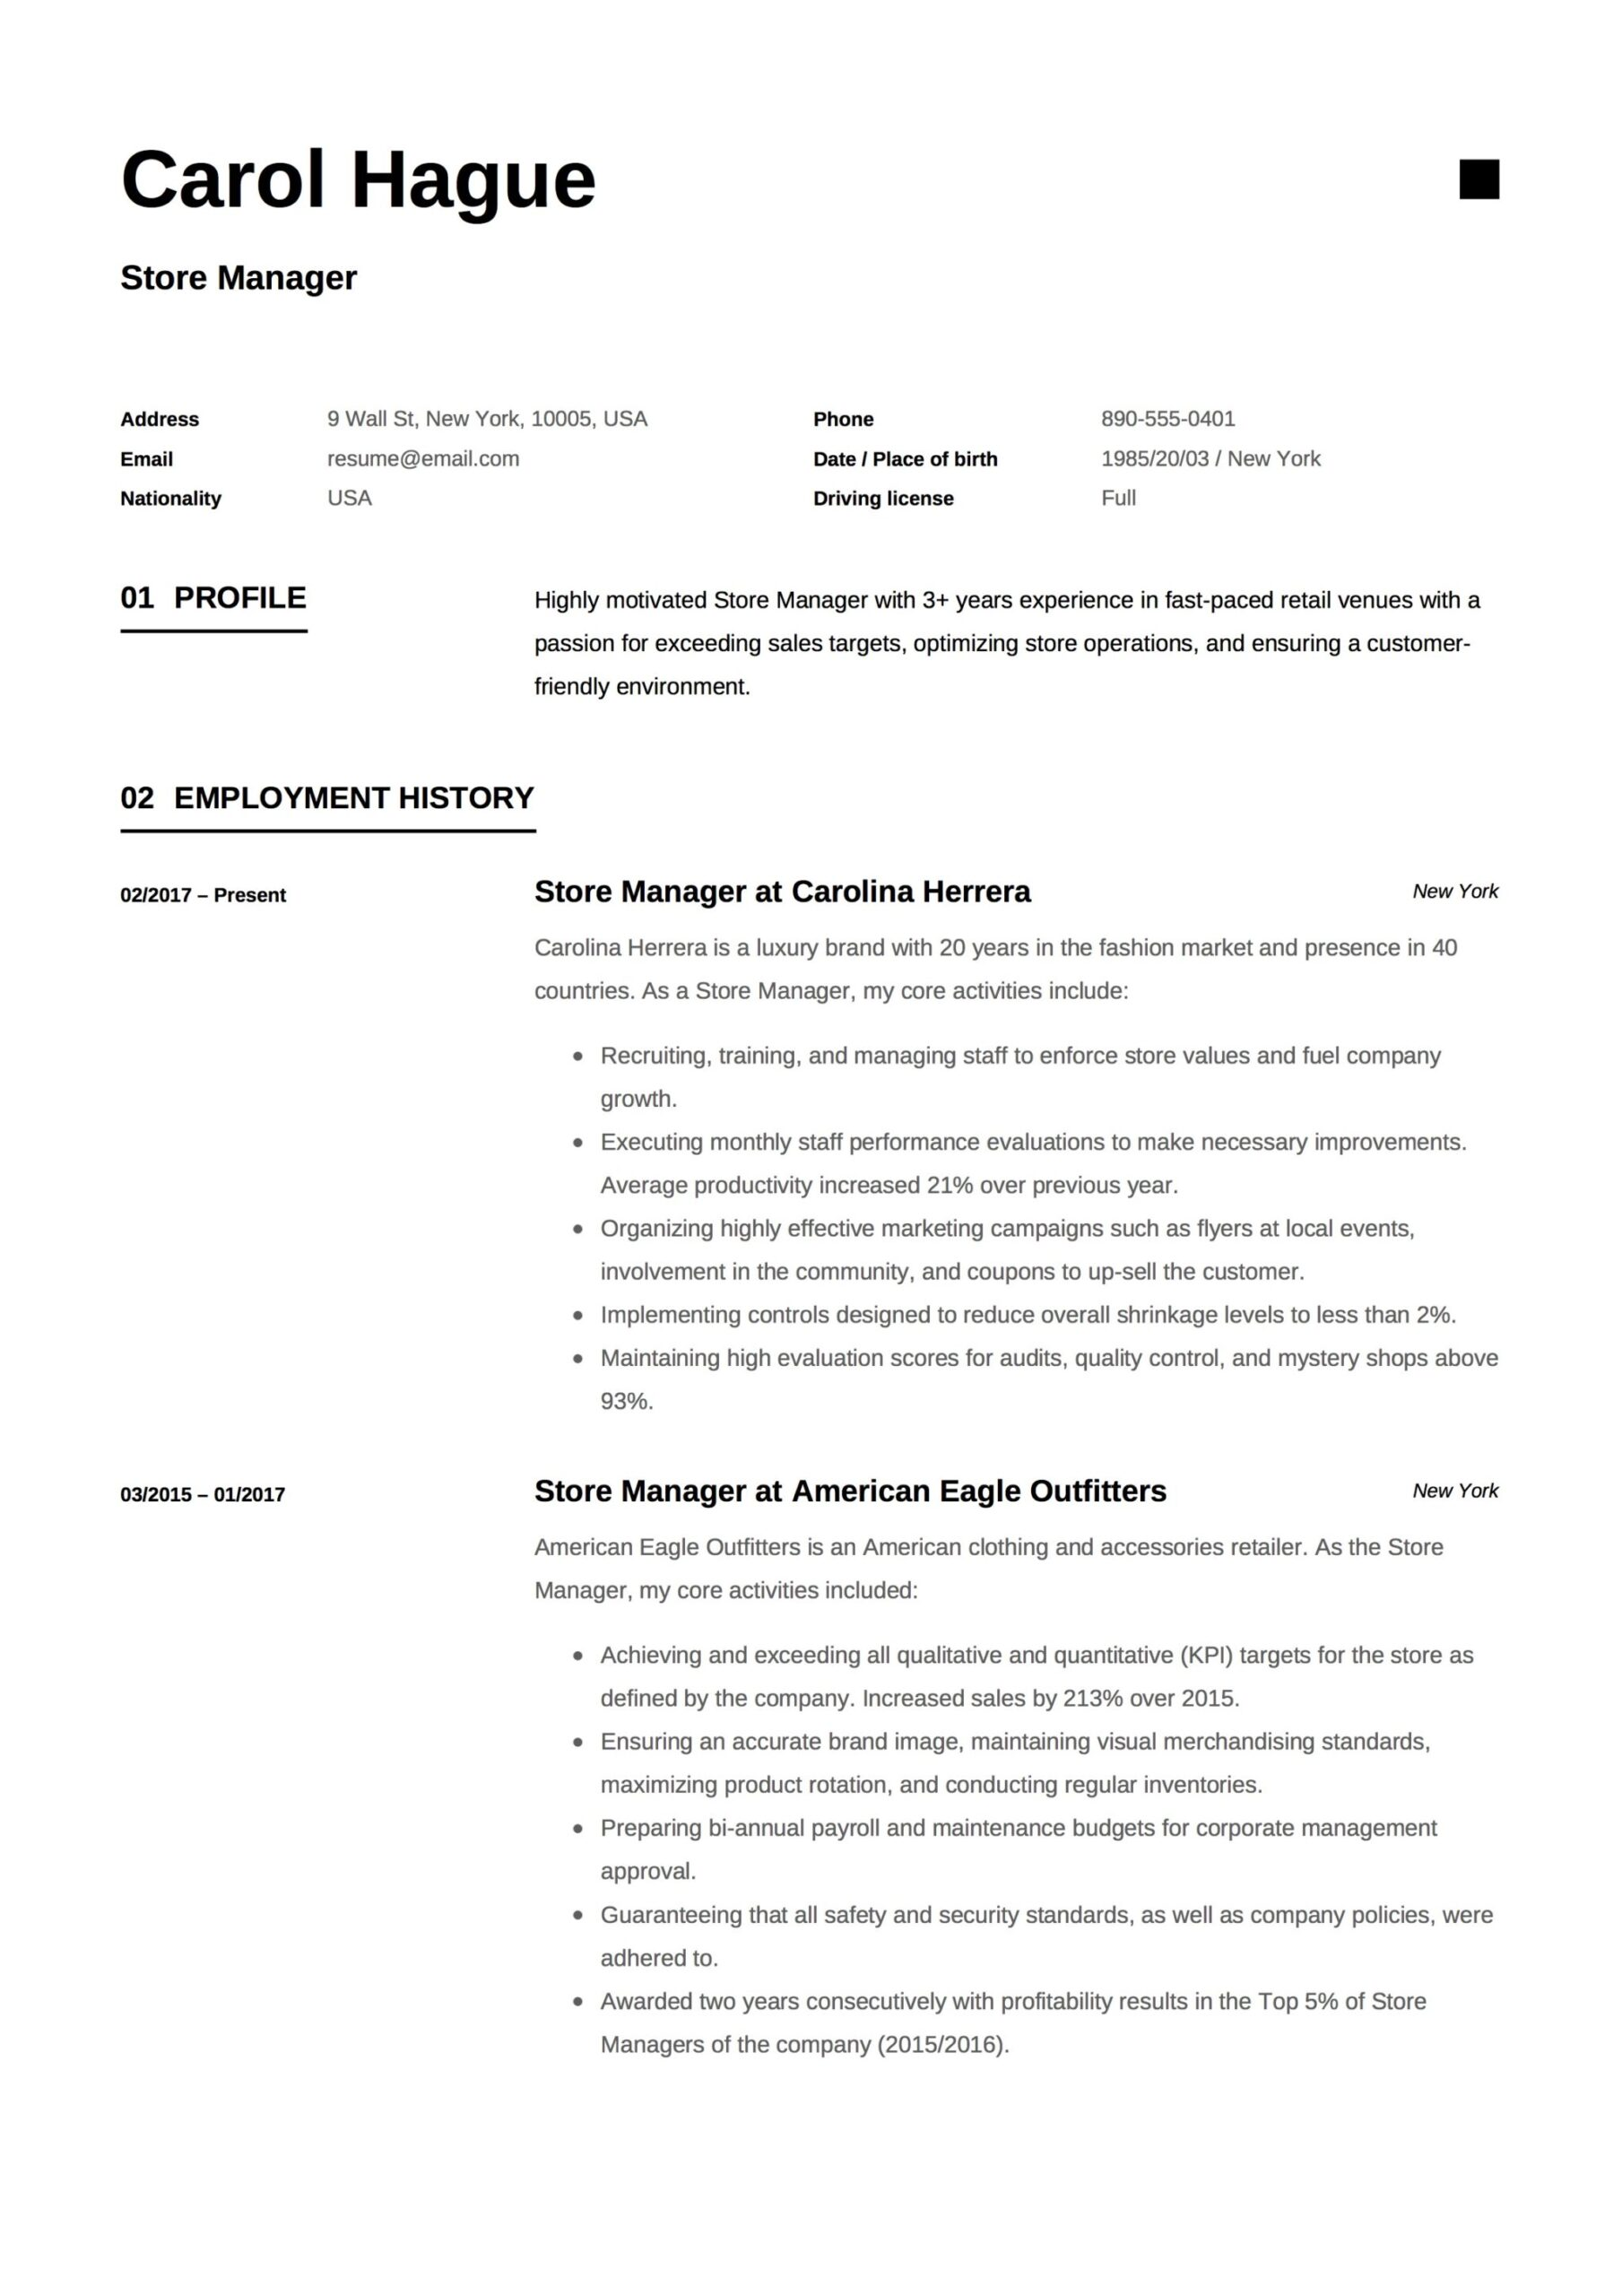 store manager resume guide samples pdf retail carol hague example for cleaning job best Resume Retail Store Manager Resume